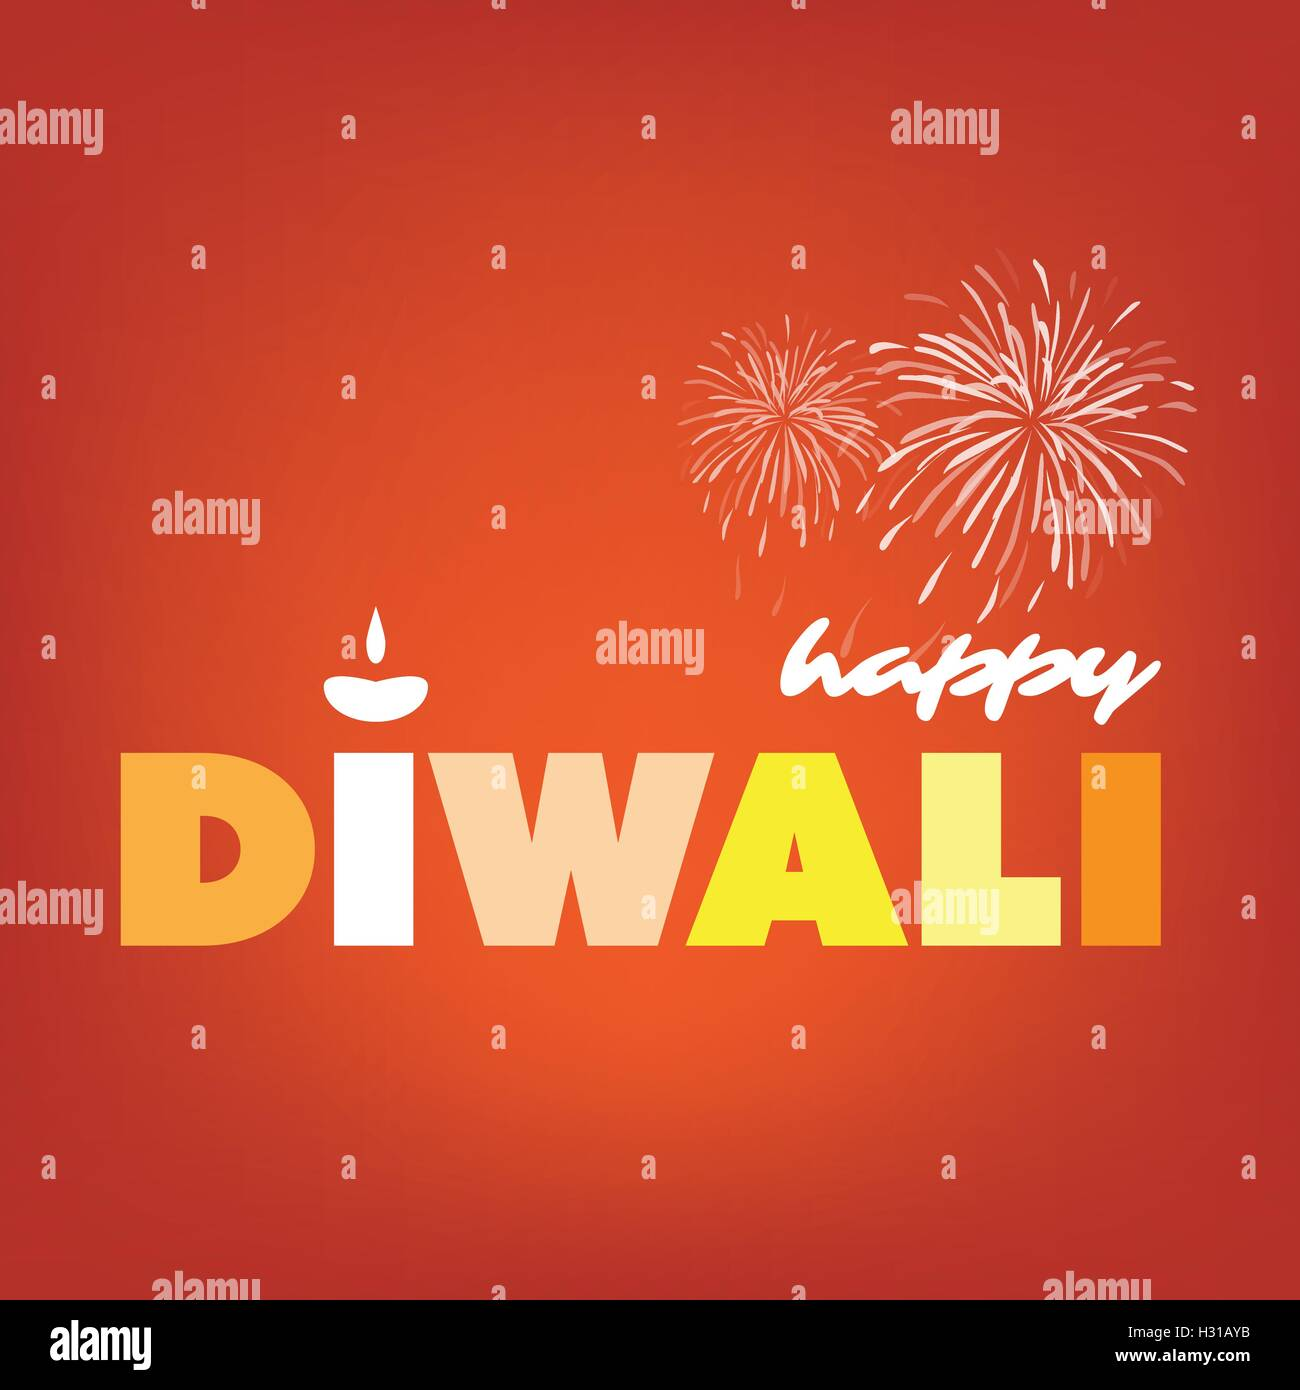 Happy diwali card abstract greeting card or background creative happy diwali card abstract greeting card or background creative design template m4hsunfo